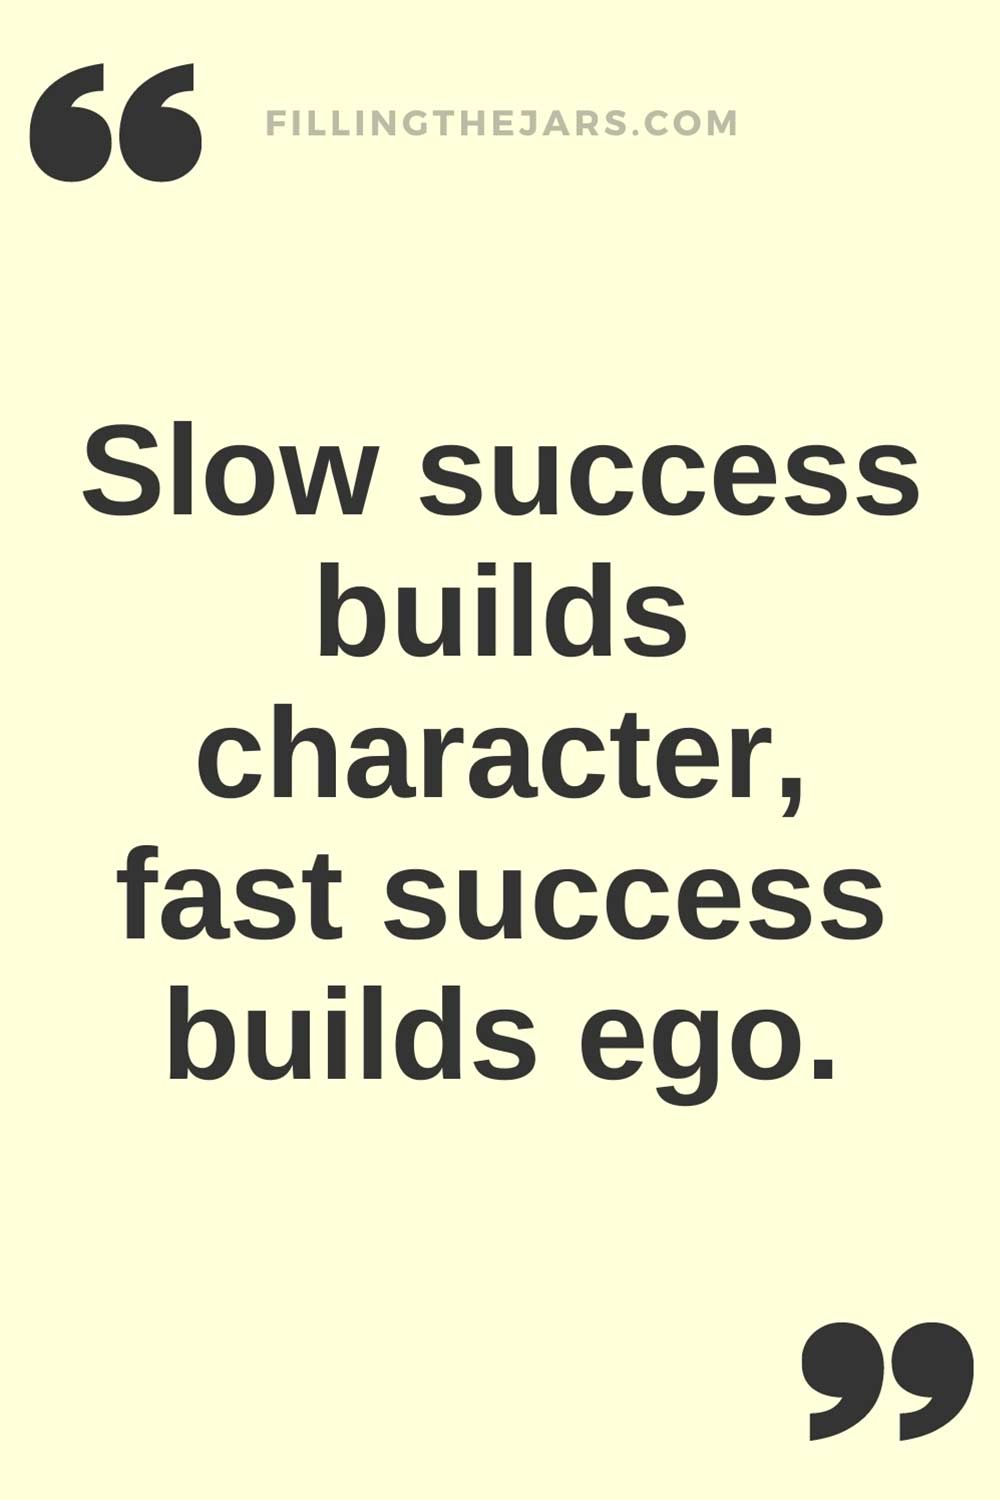 Slow success builds character quote in black text on creamy white background.